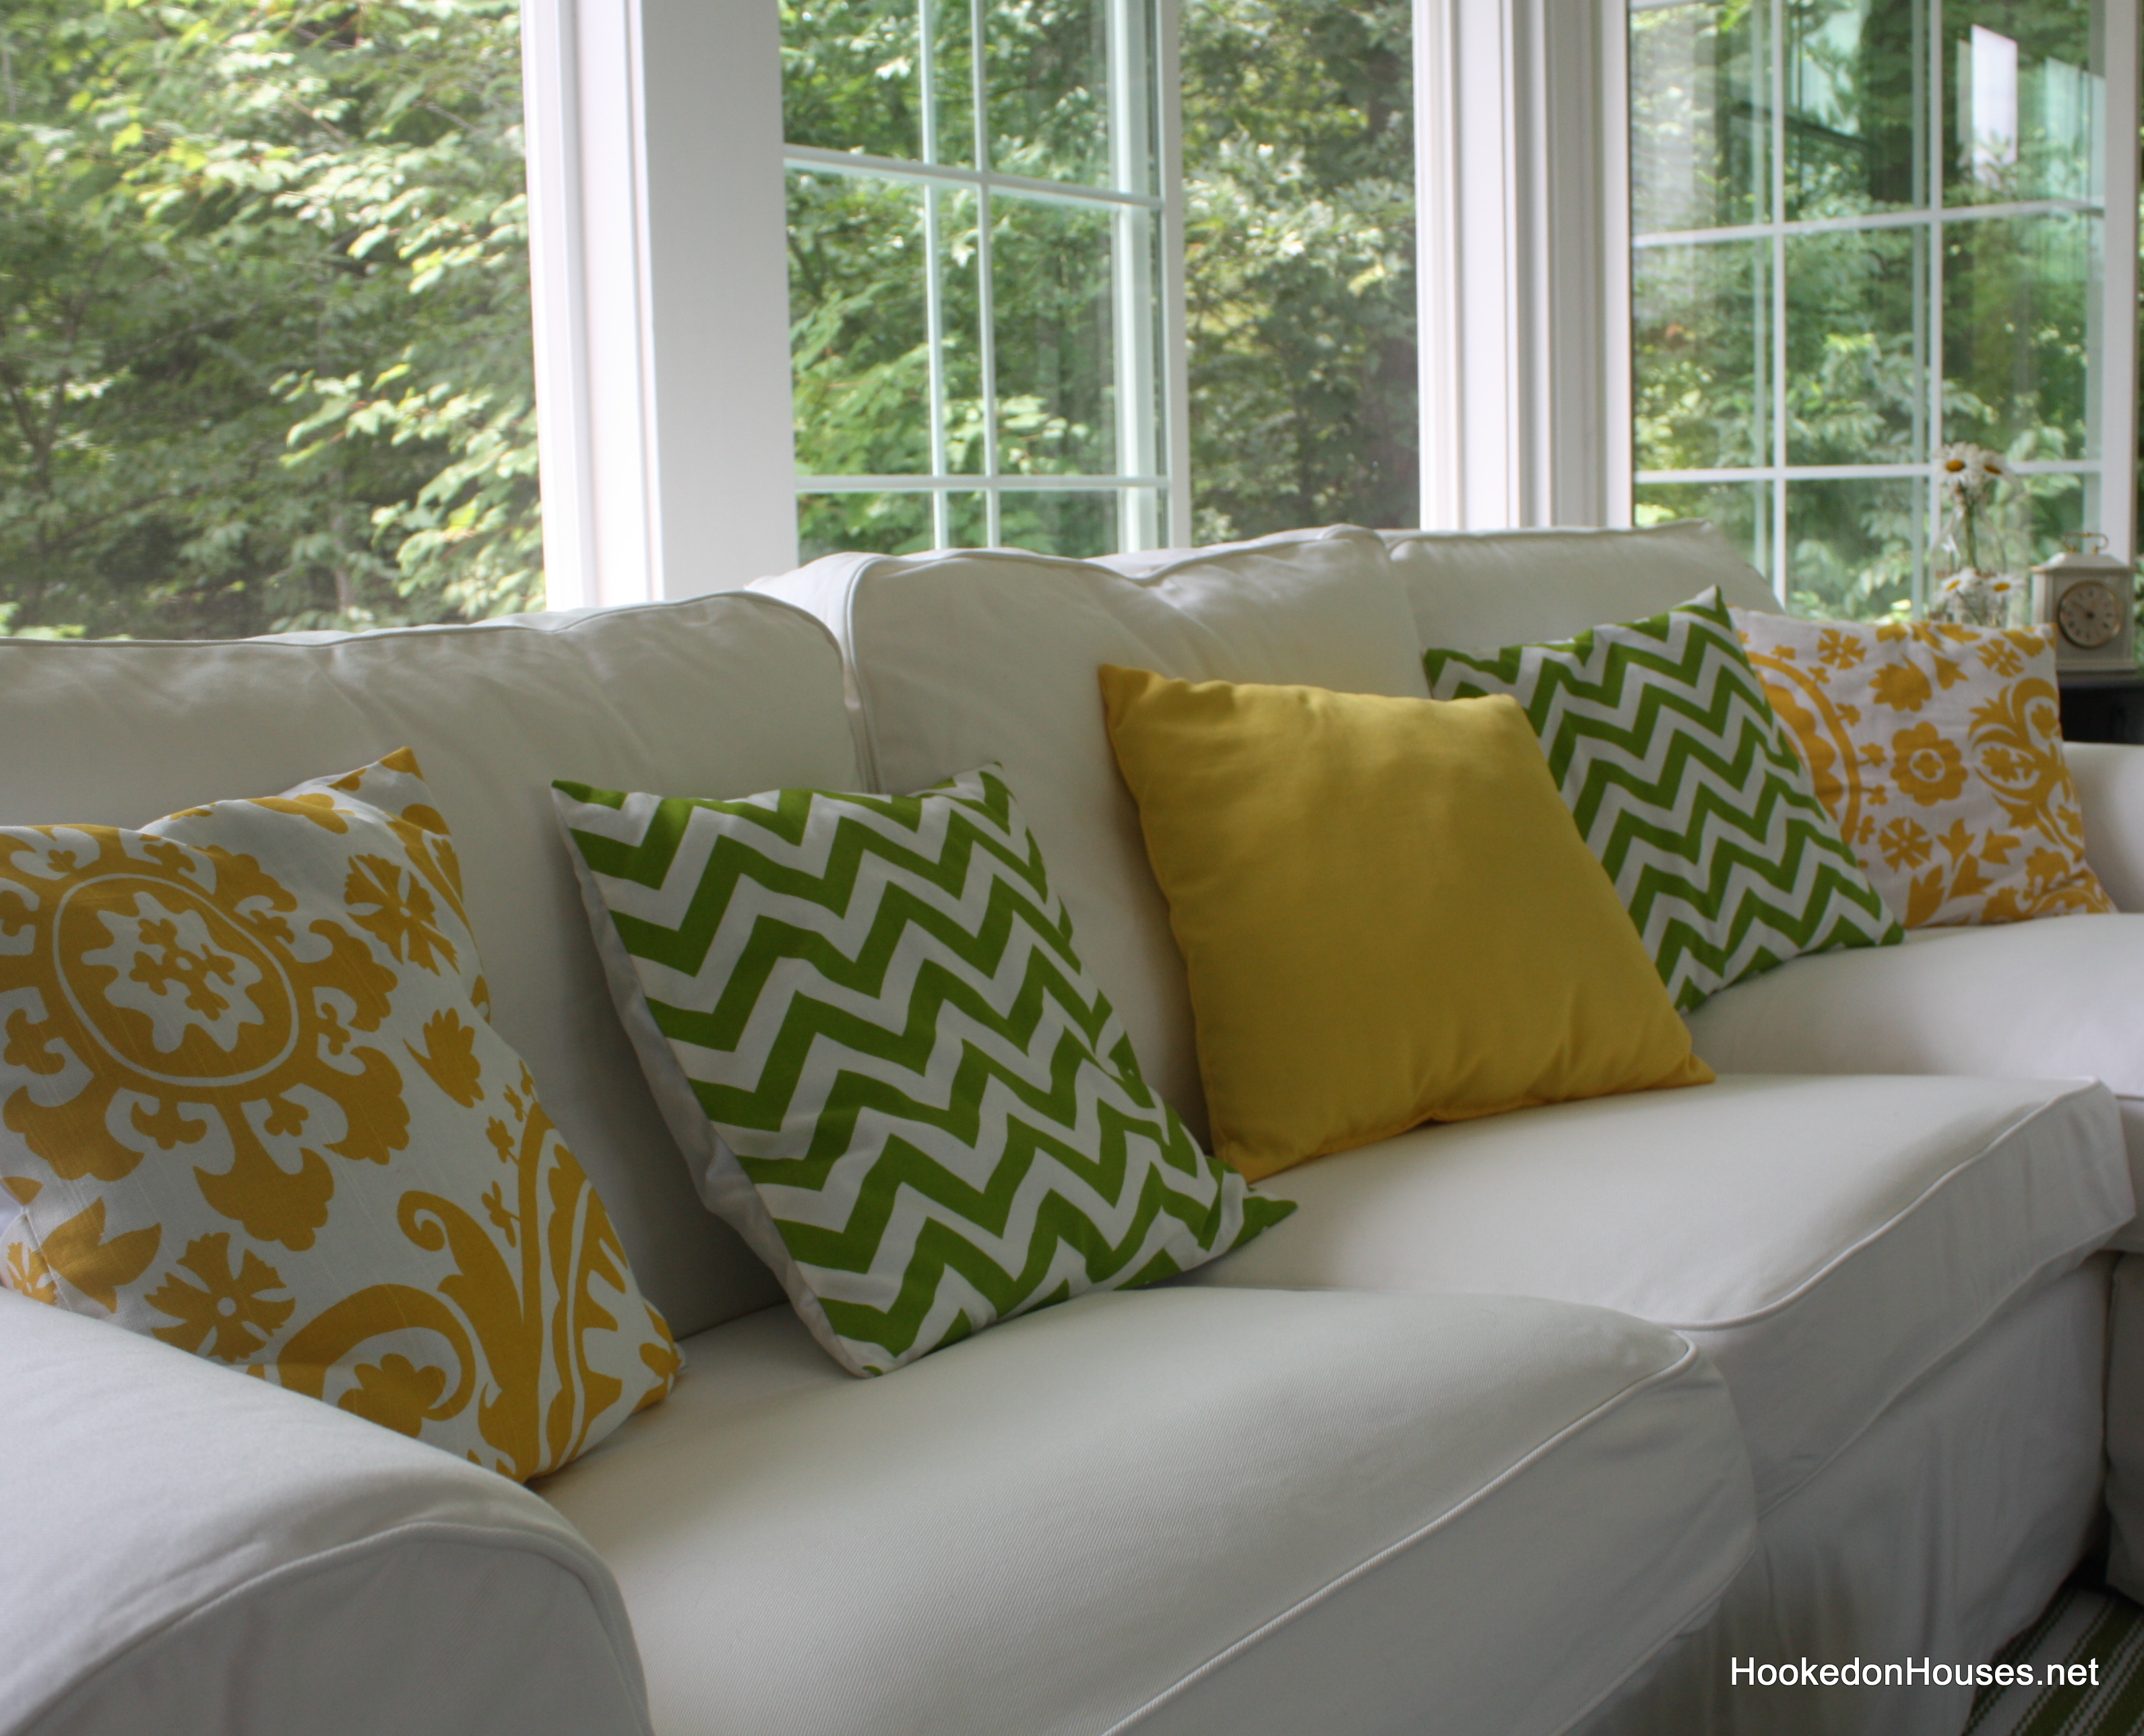 close-up of new pillows on sofa 7-